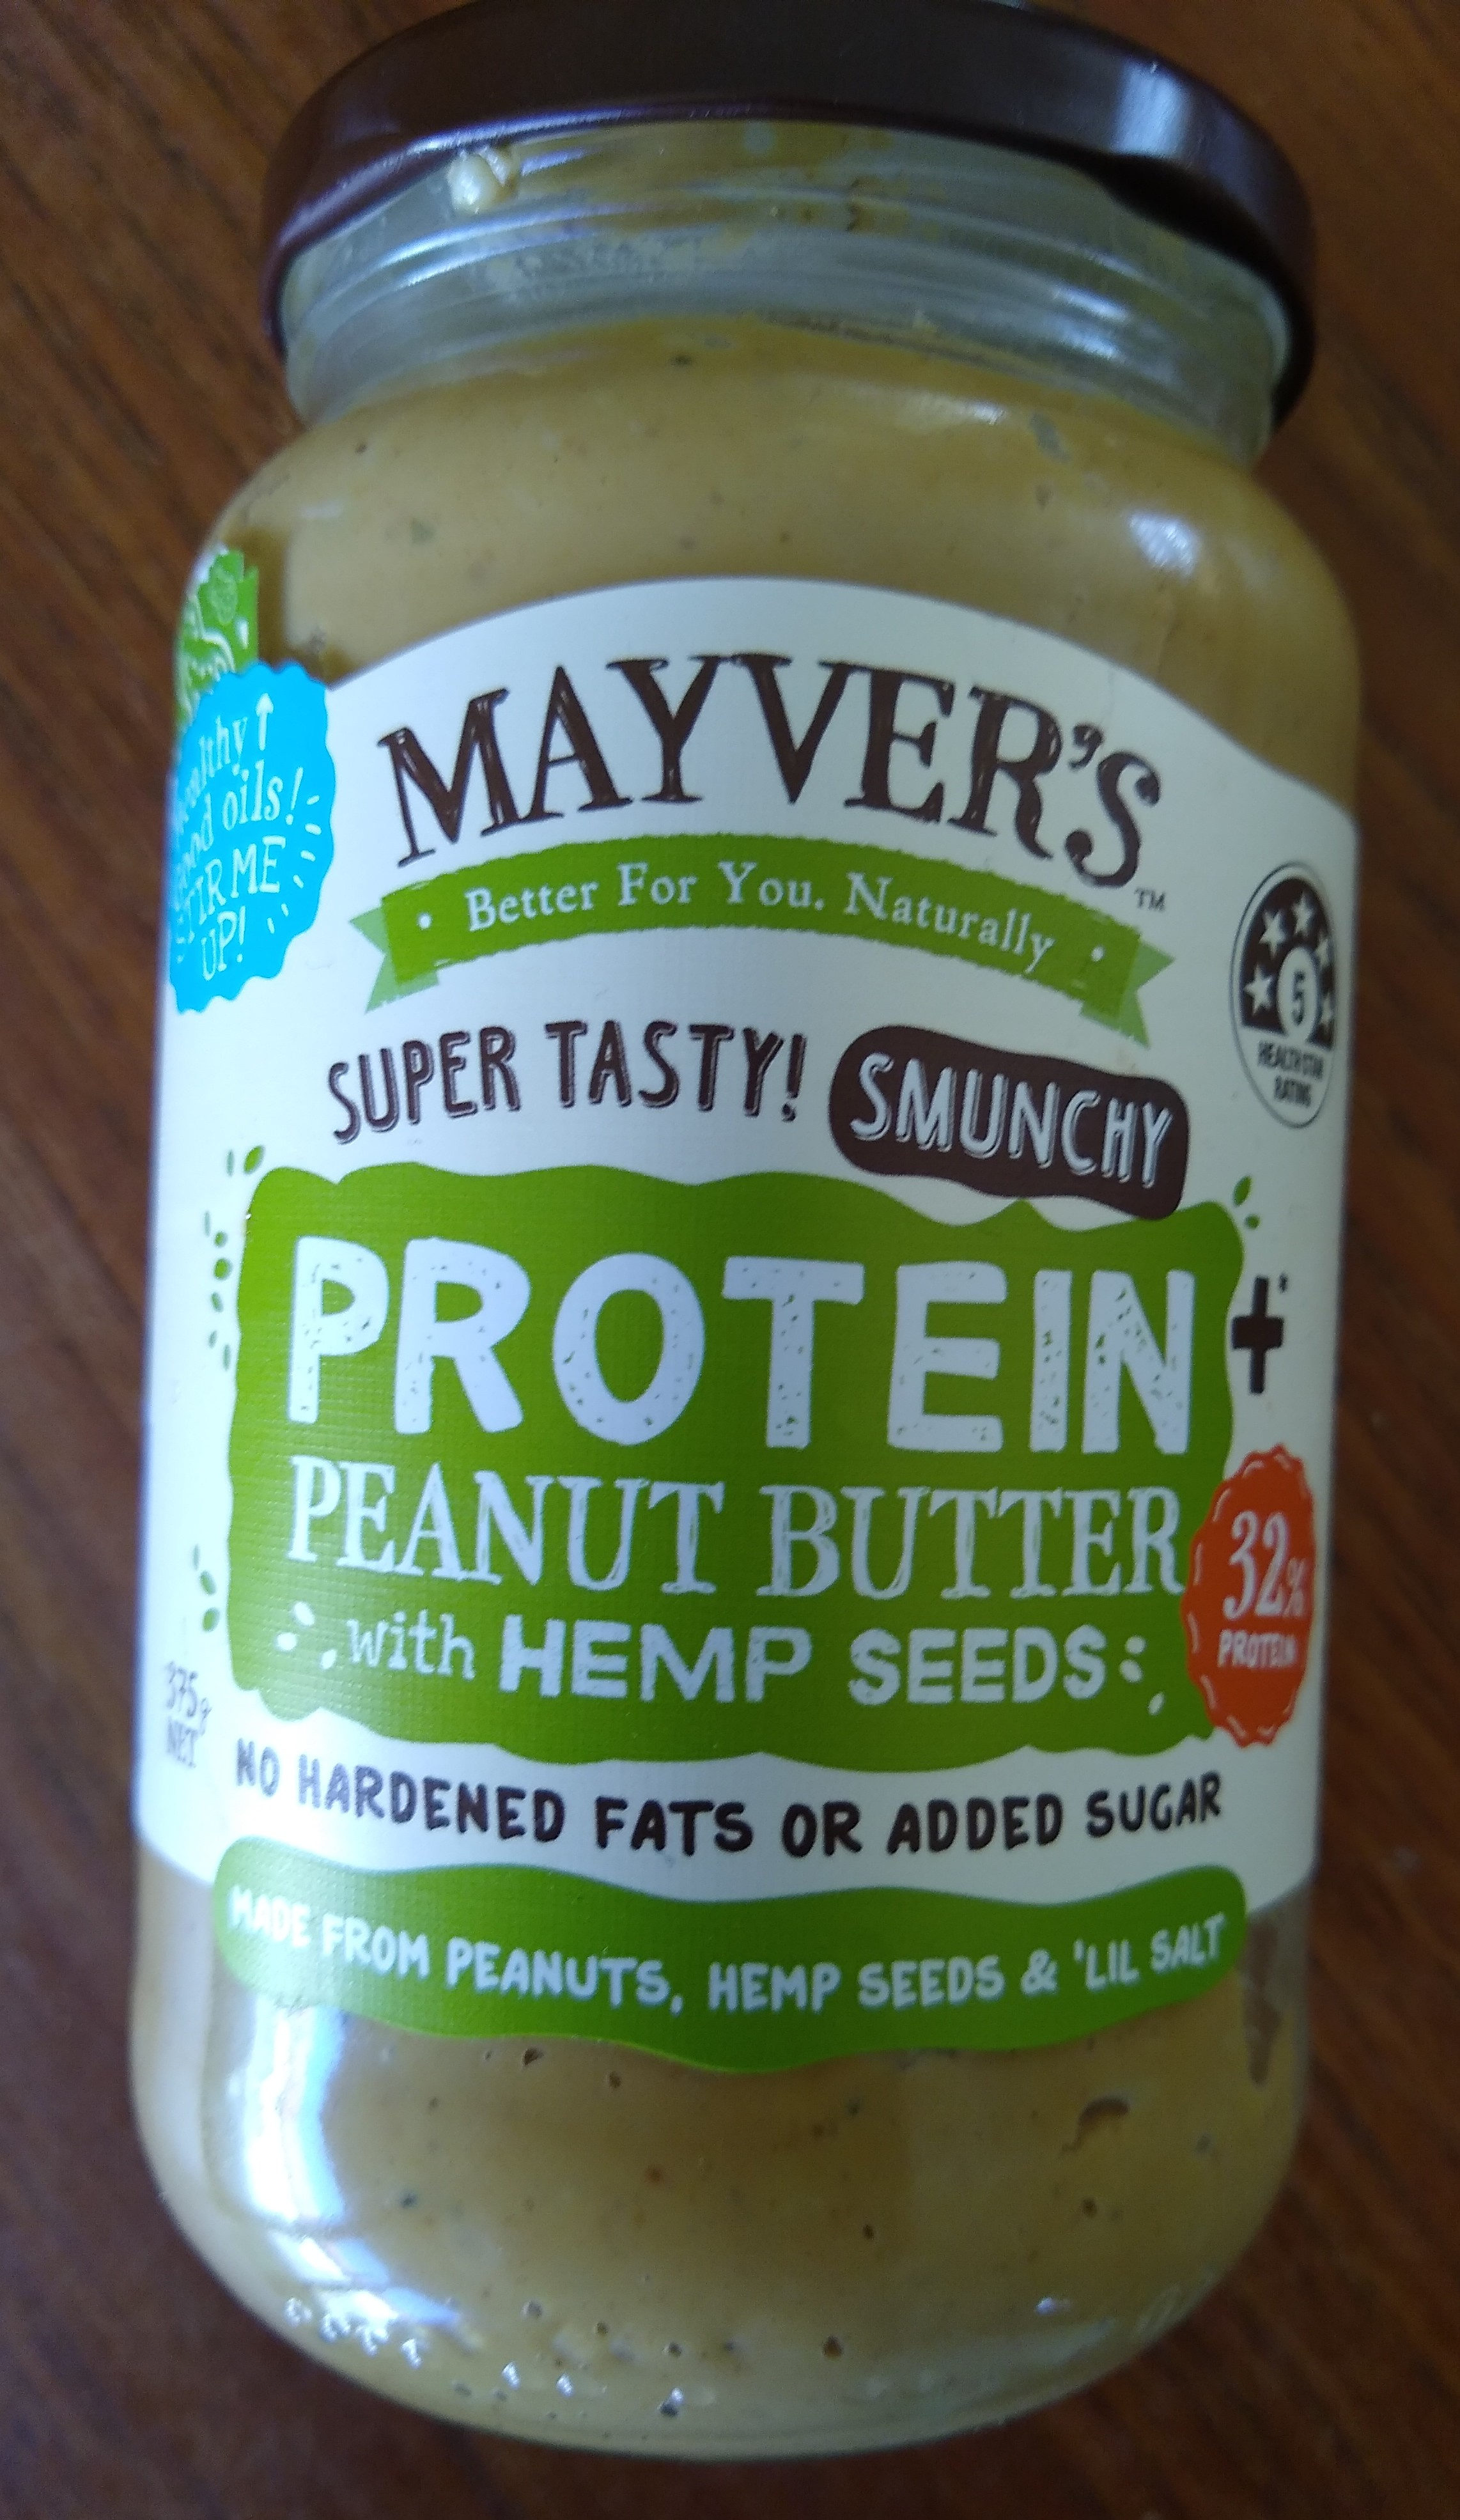 Mayver's Protein+ Peanut Butter with hemp seeds. - Product